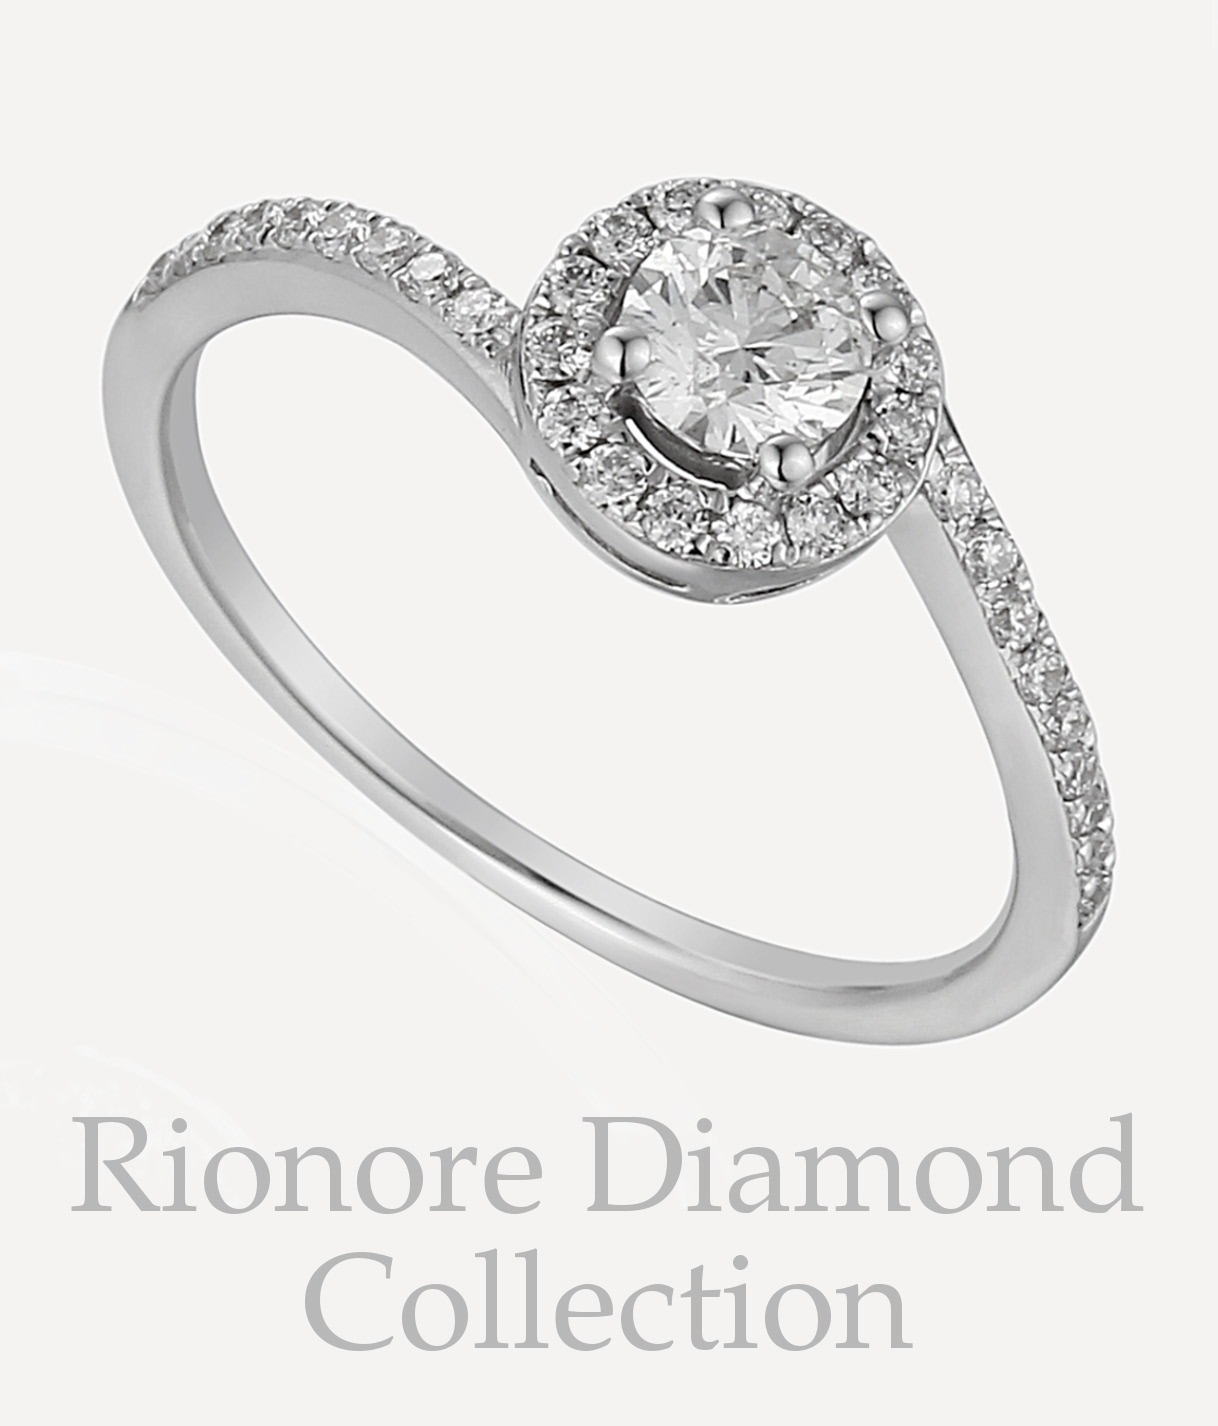 Rionore bespoke made-to-order diamond jewellery in 18ct white gold and platinum